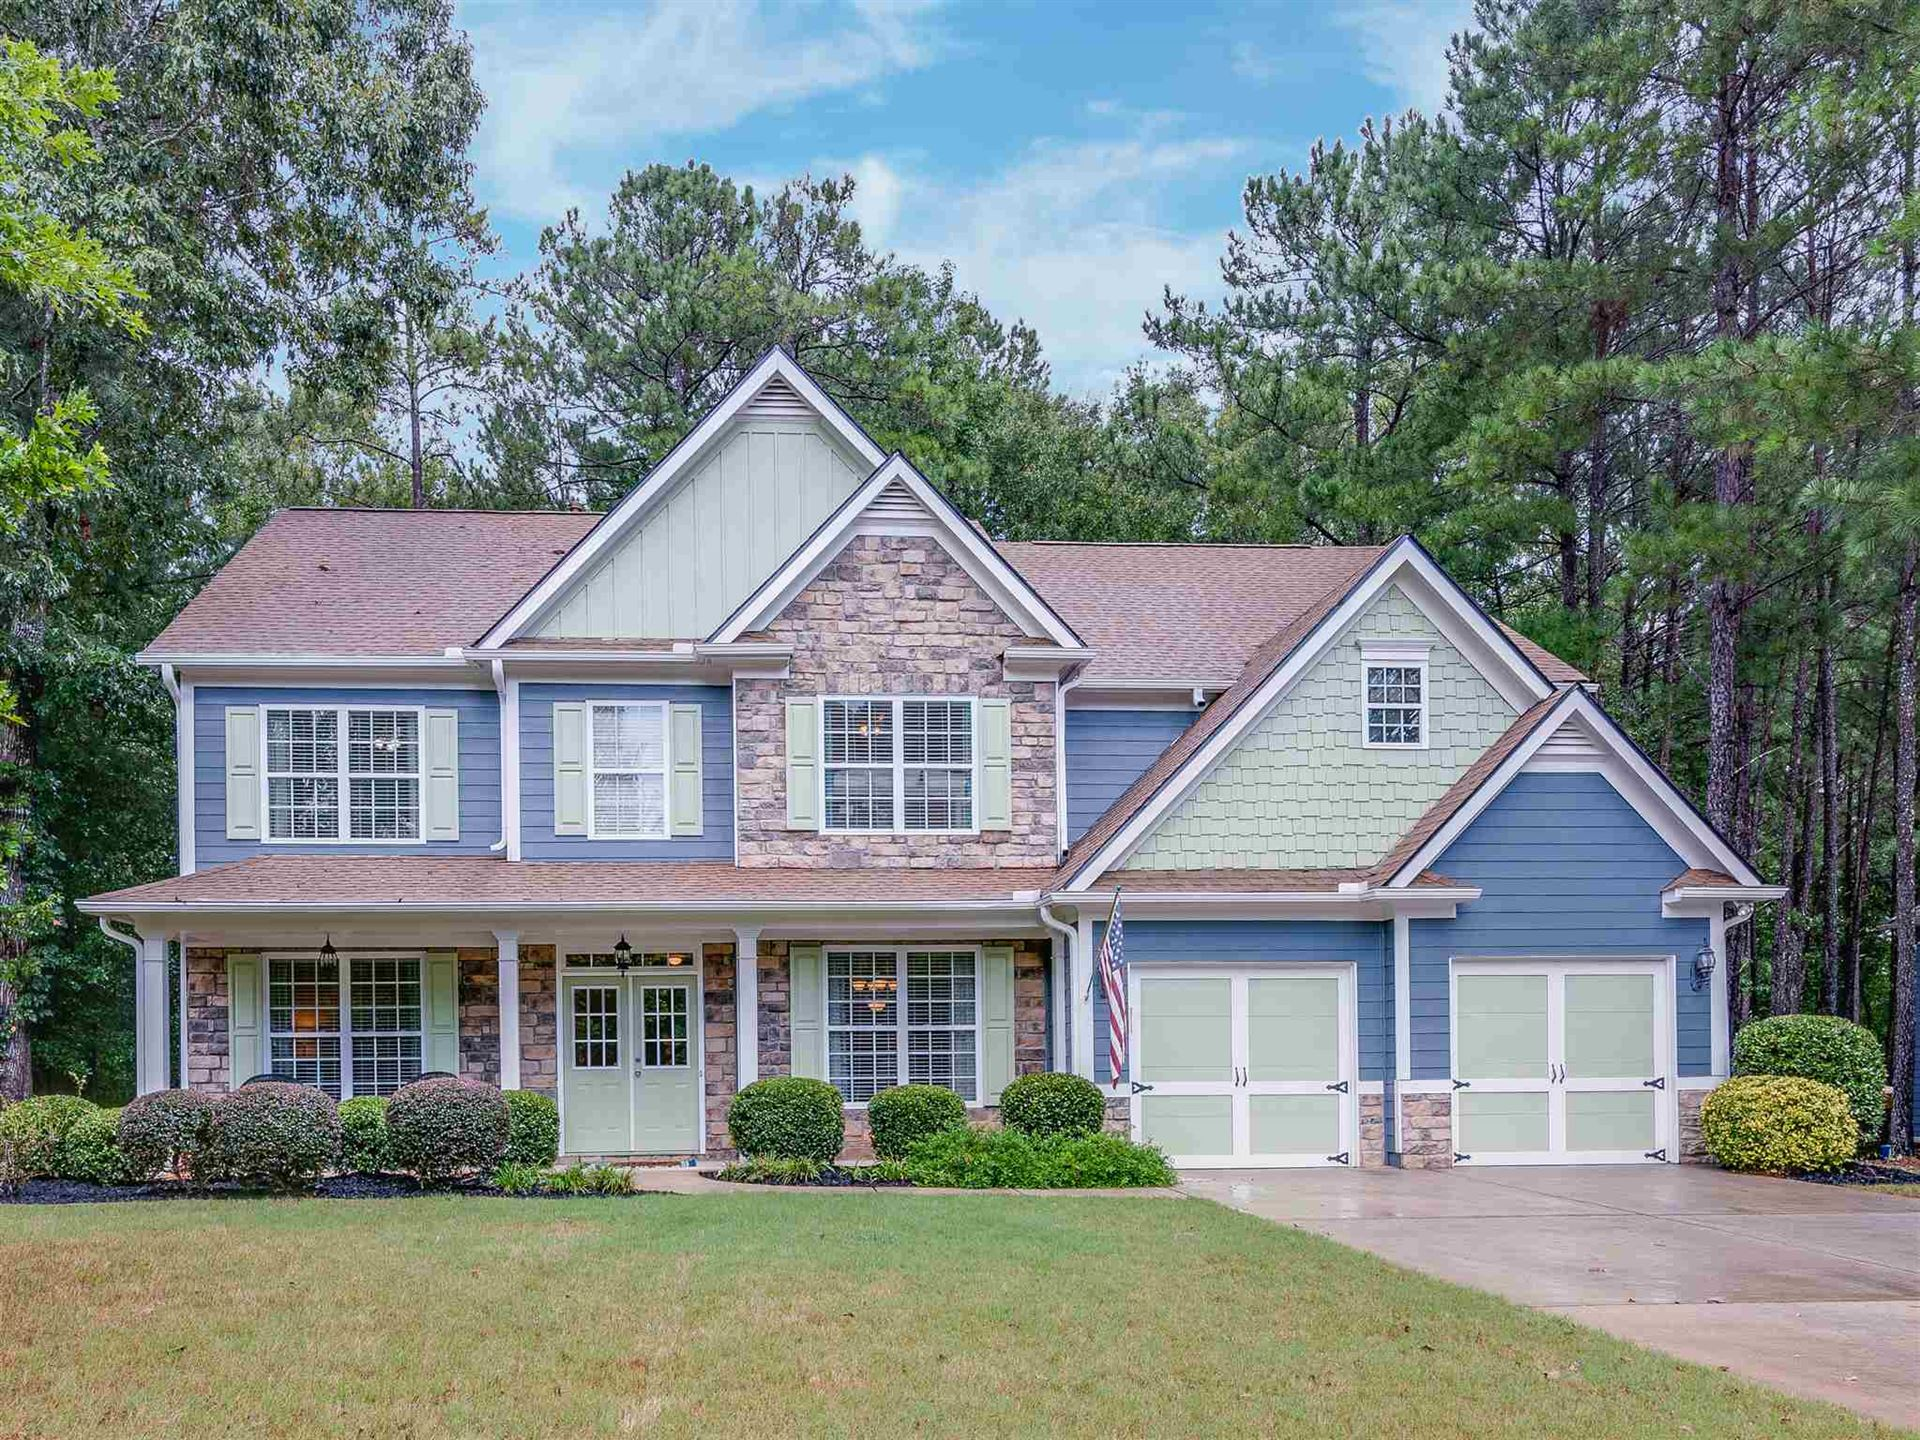 3032 Norwell Ct, Locust Grove, GA 30248 - MLS#: 8857818